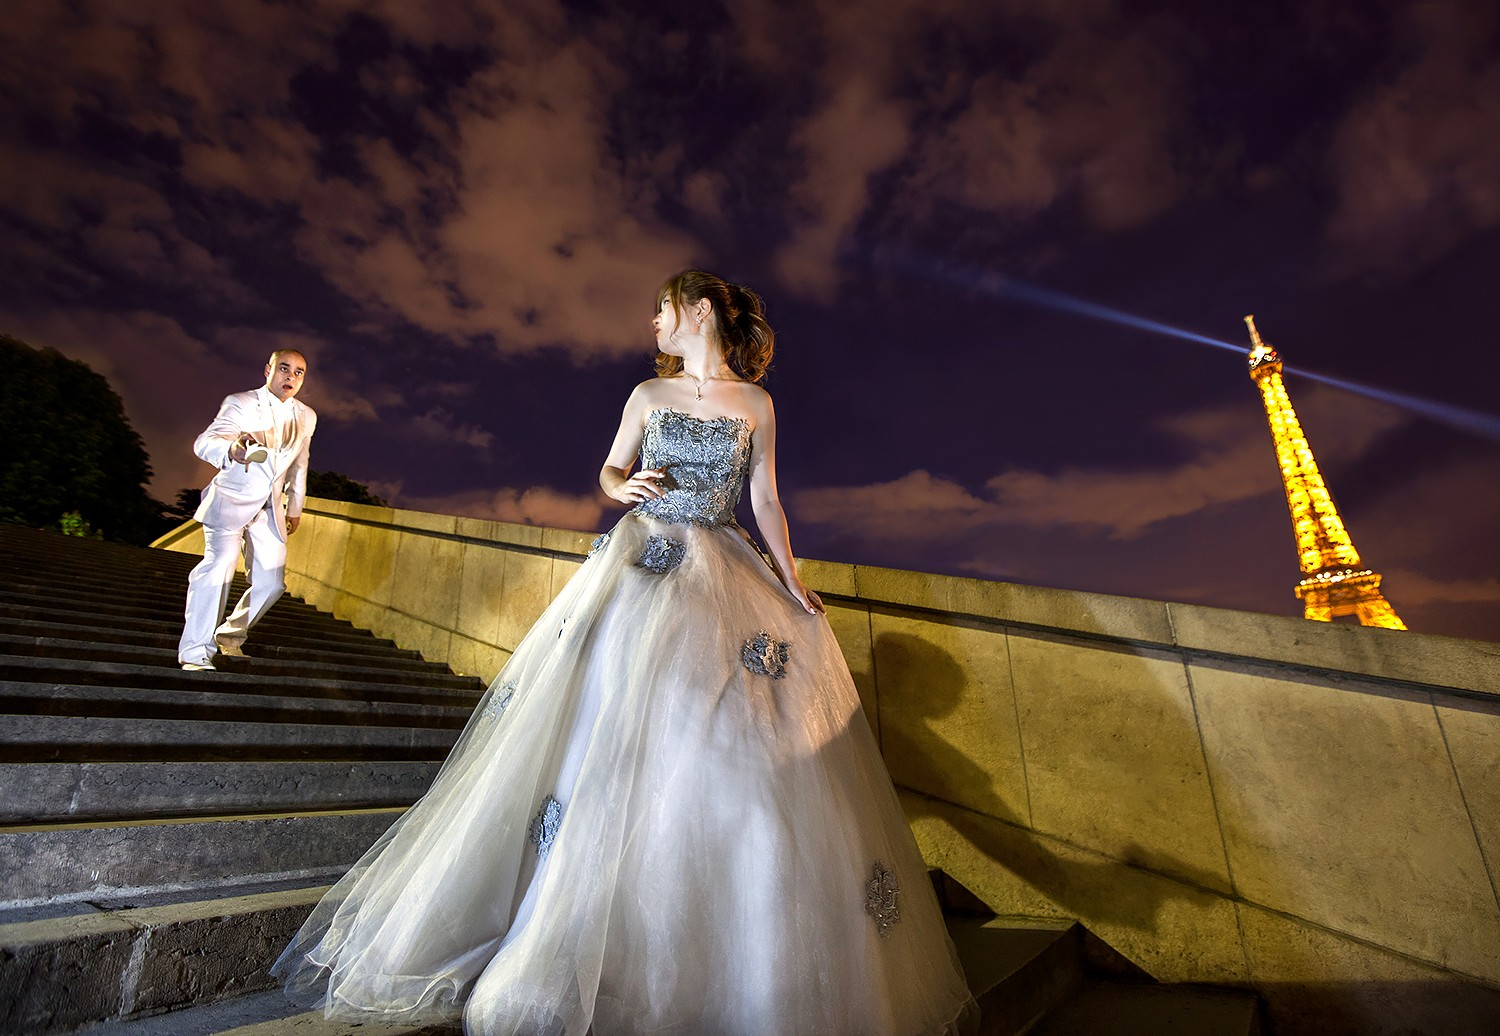 Bride and groom recreating Disney's Cinderella